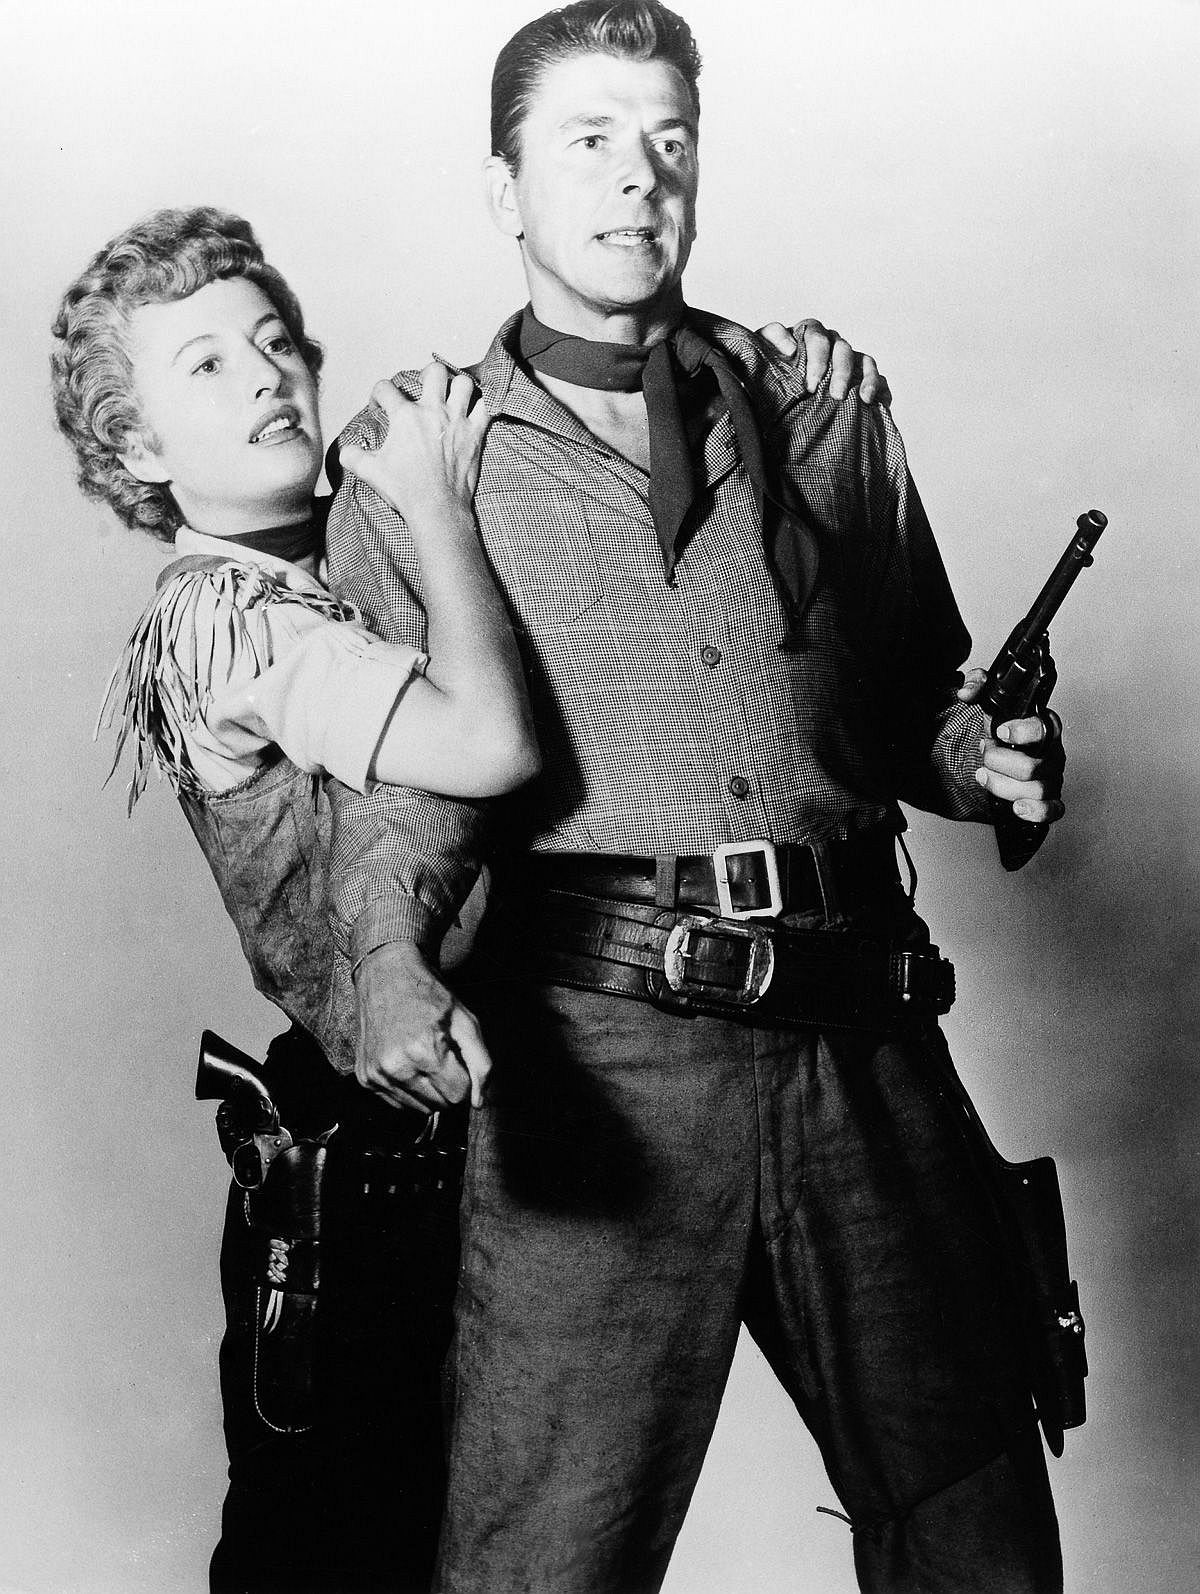 1954  Reagan and Barbara Stanwyck pose for a promo still for Cattle Queen of Montana.  Image: Pressefoto Kindermann/ullstein bild/Getty Images